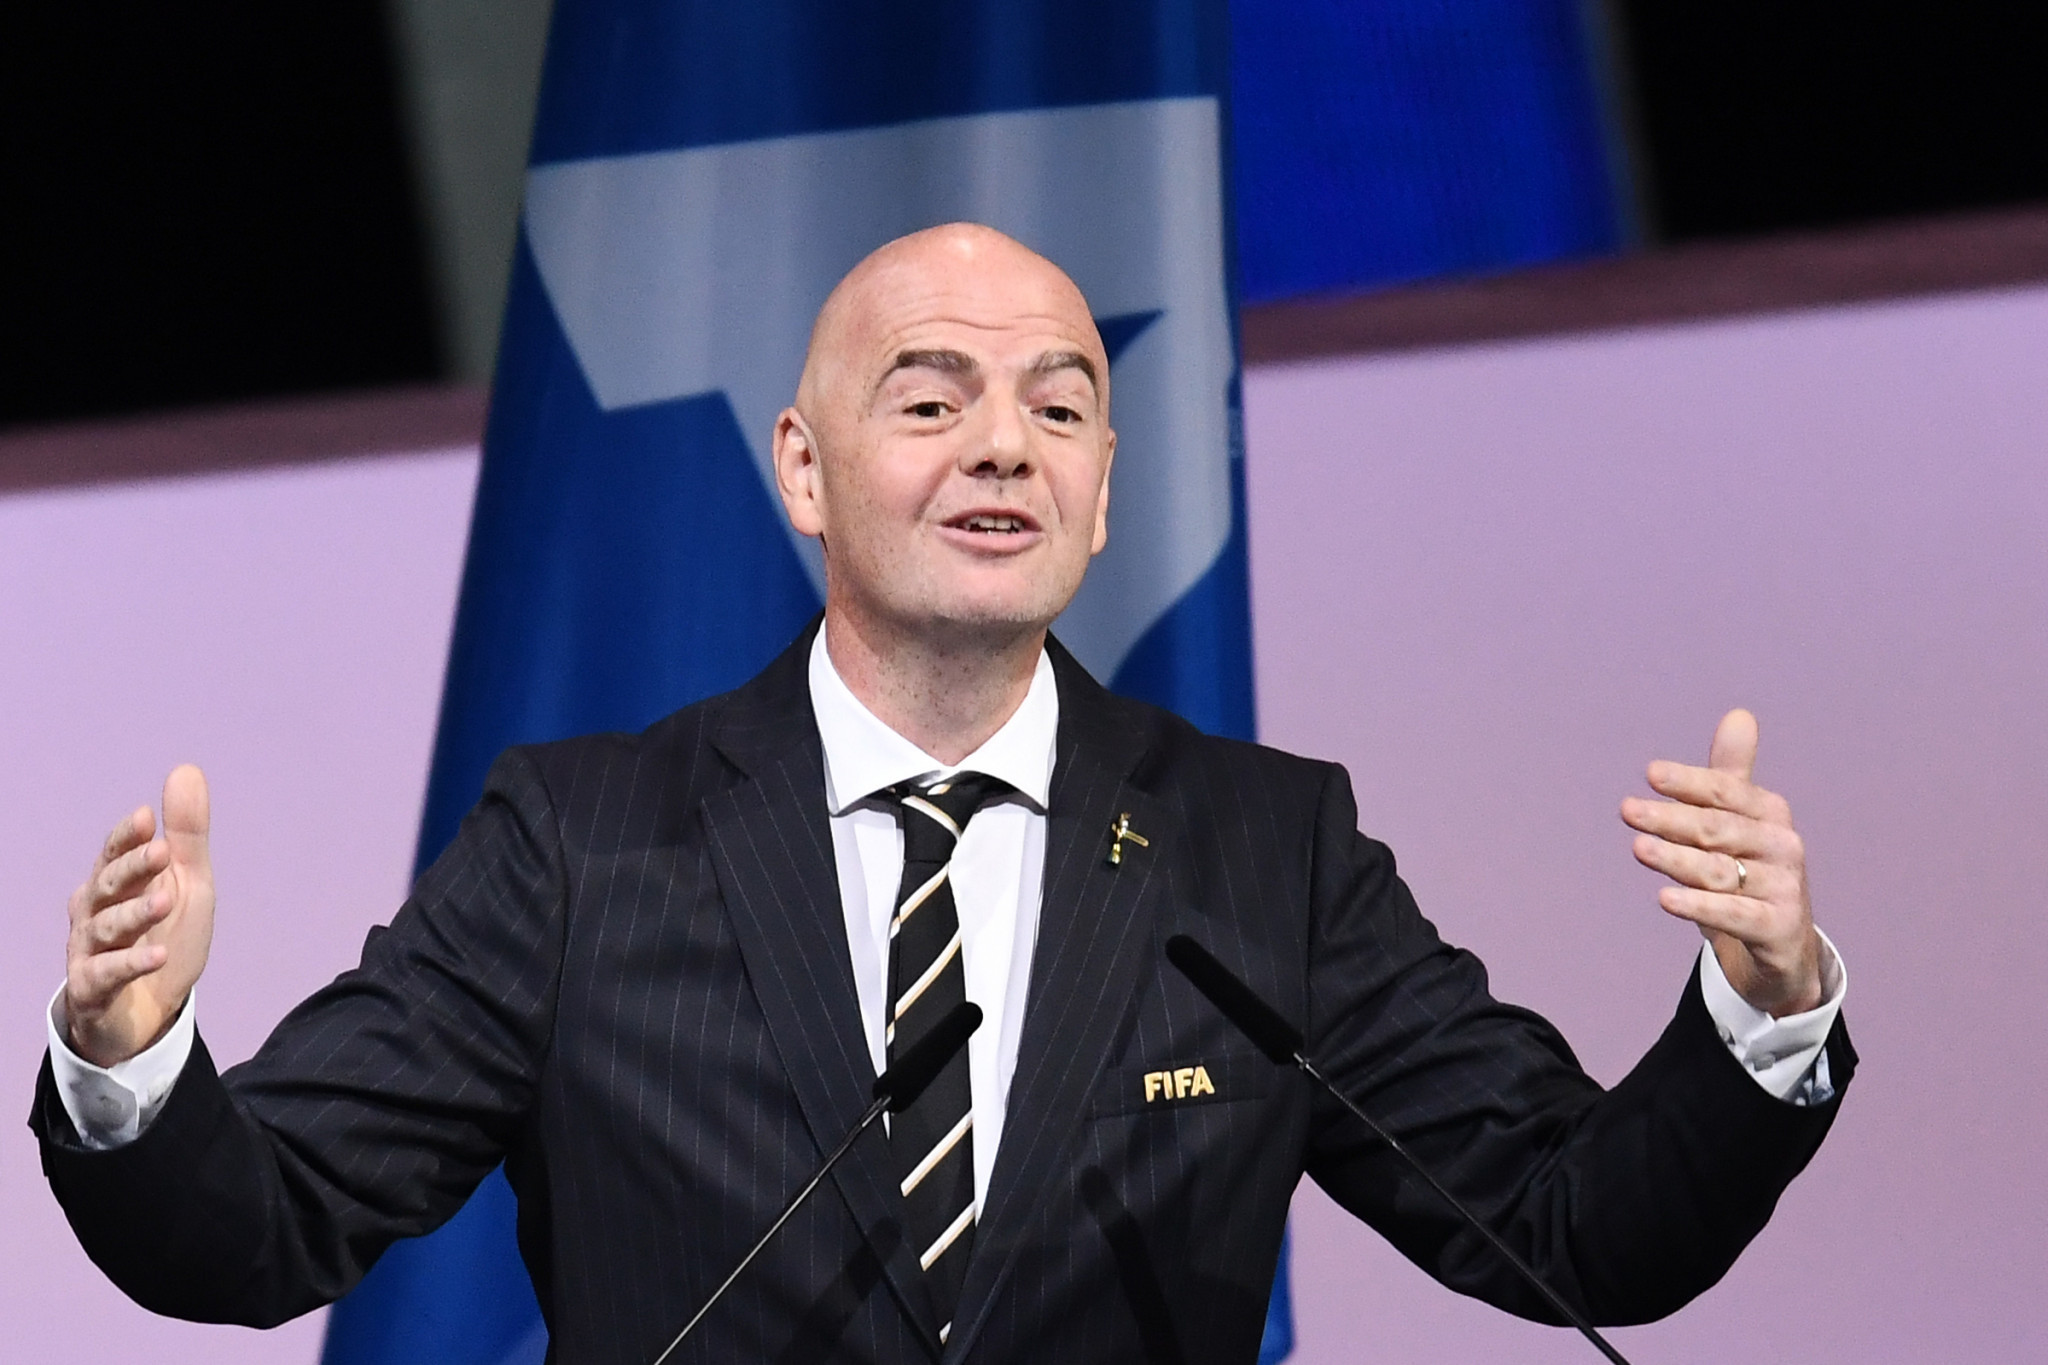 Infantino re-elected FIFA President by acclamation